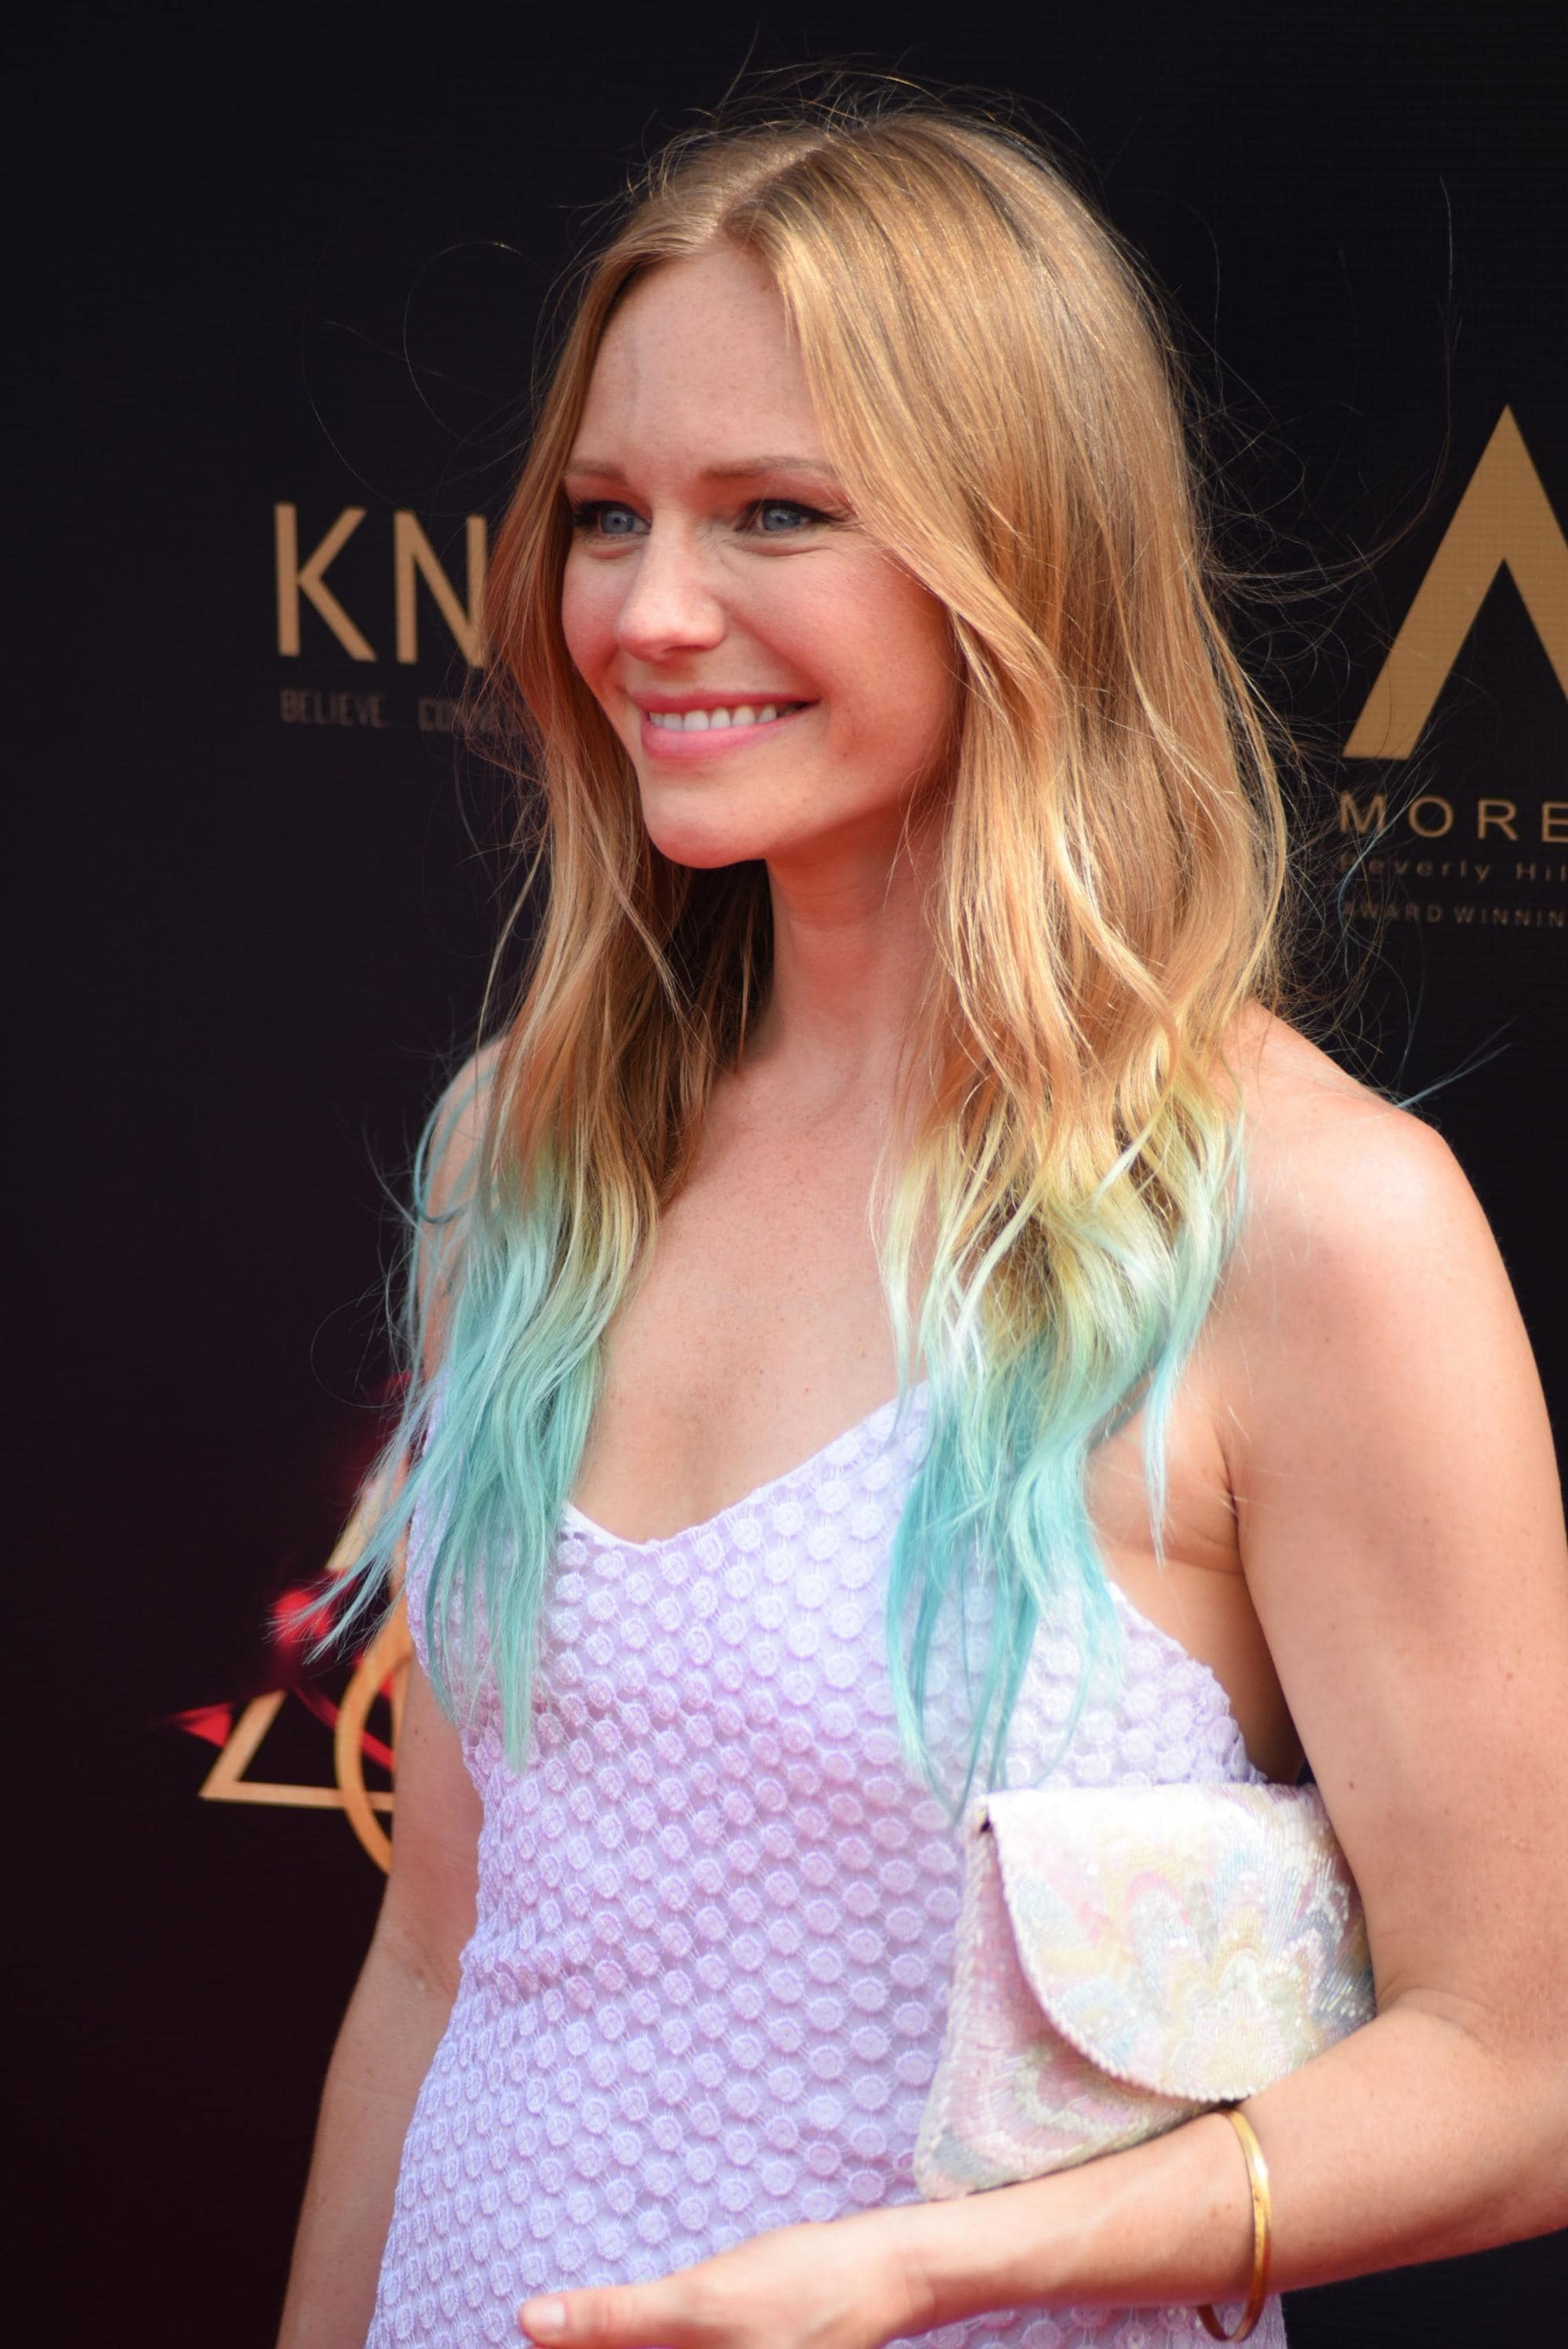 Emmy Awards 2019 Best Hairstyles: Marci Miller with her dip dyed hair in aquamarine